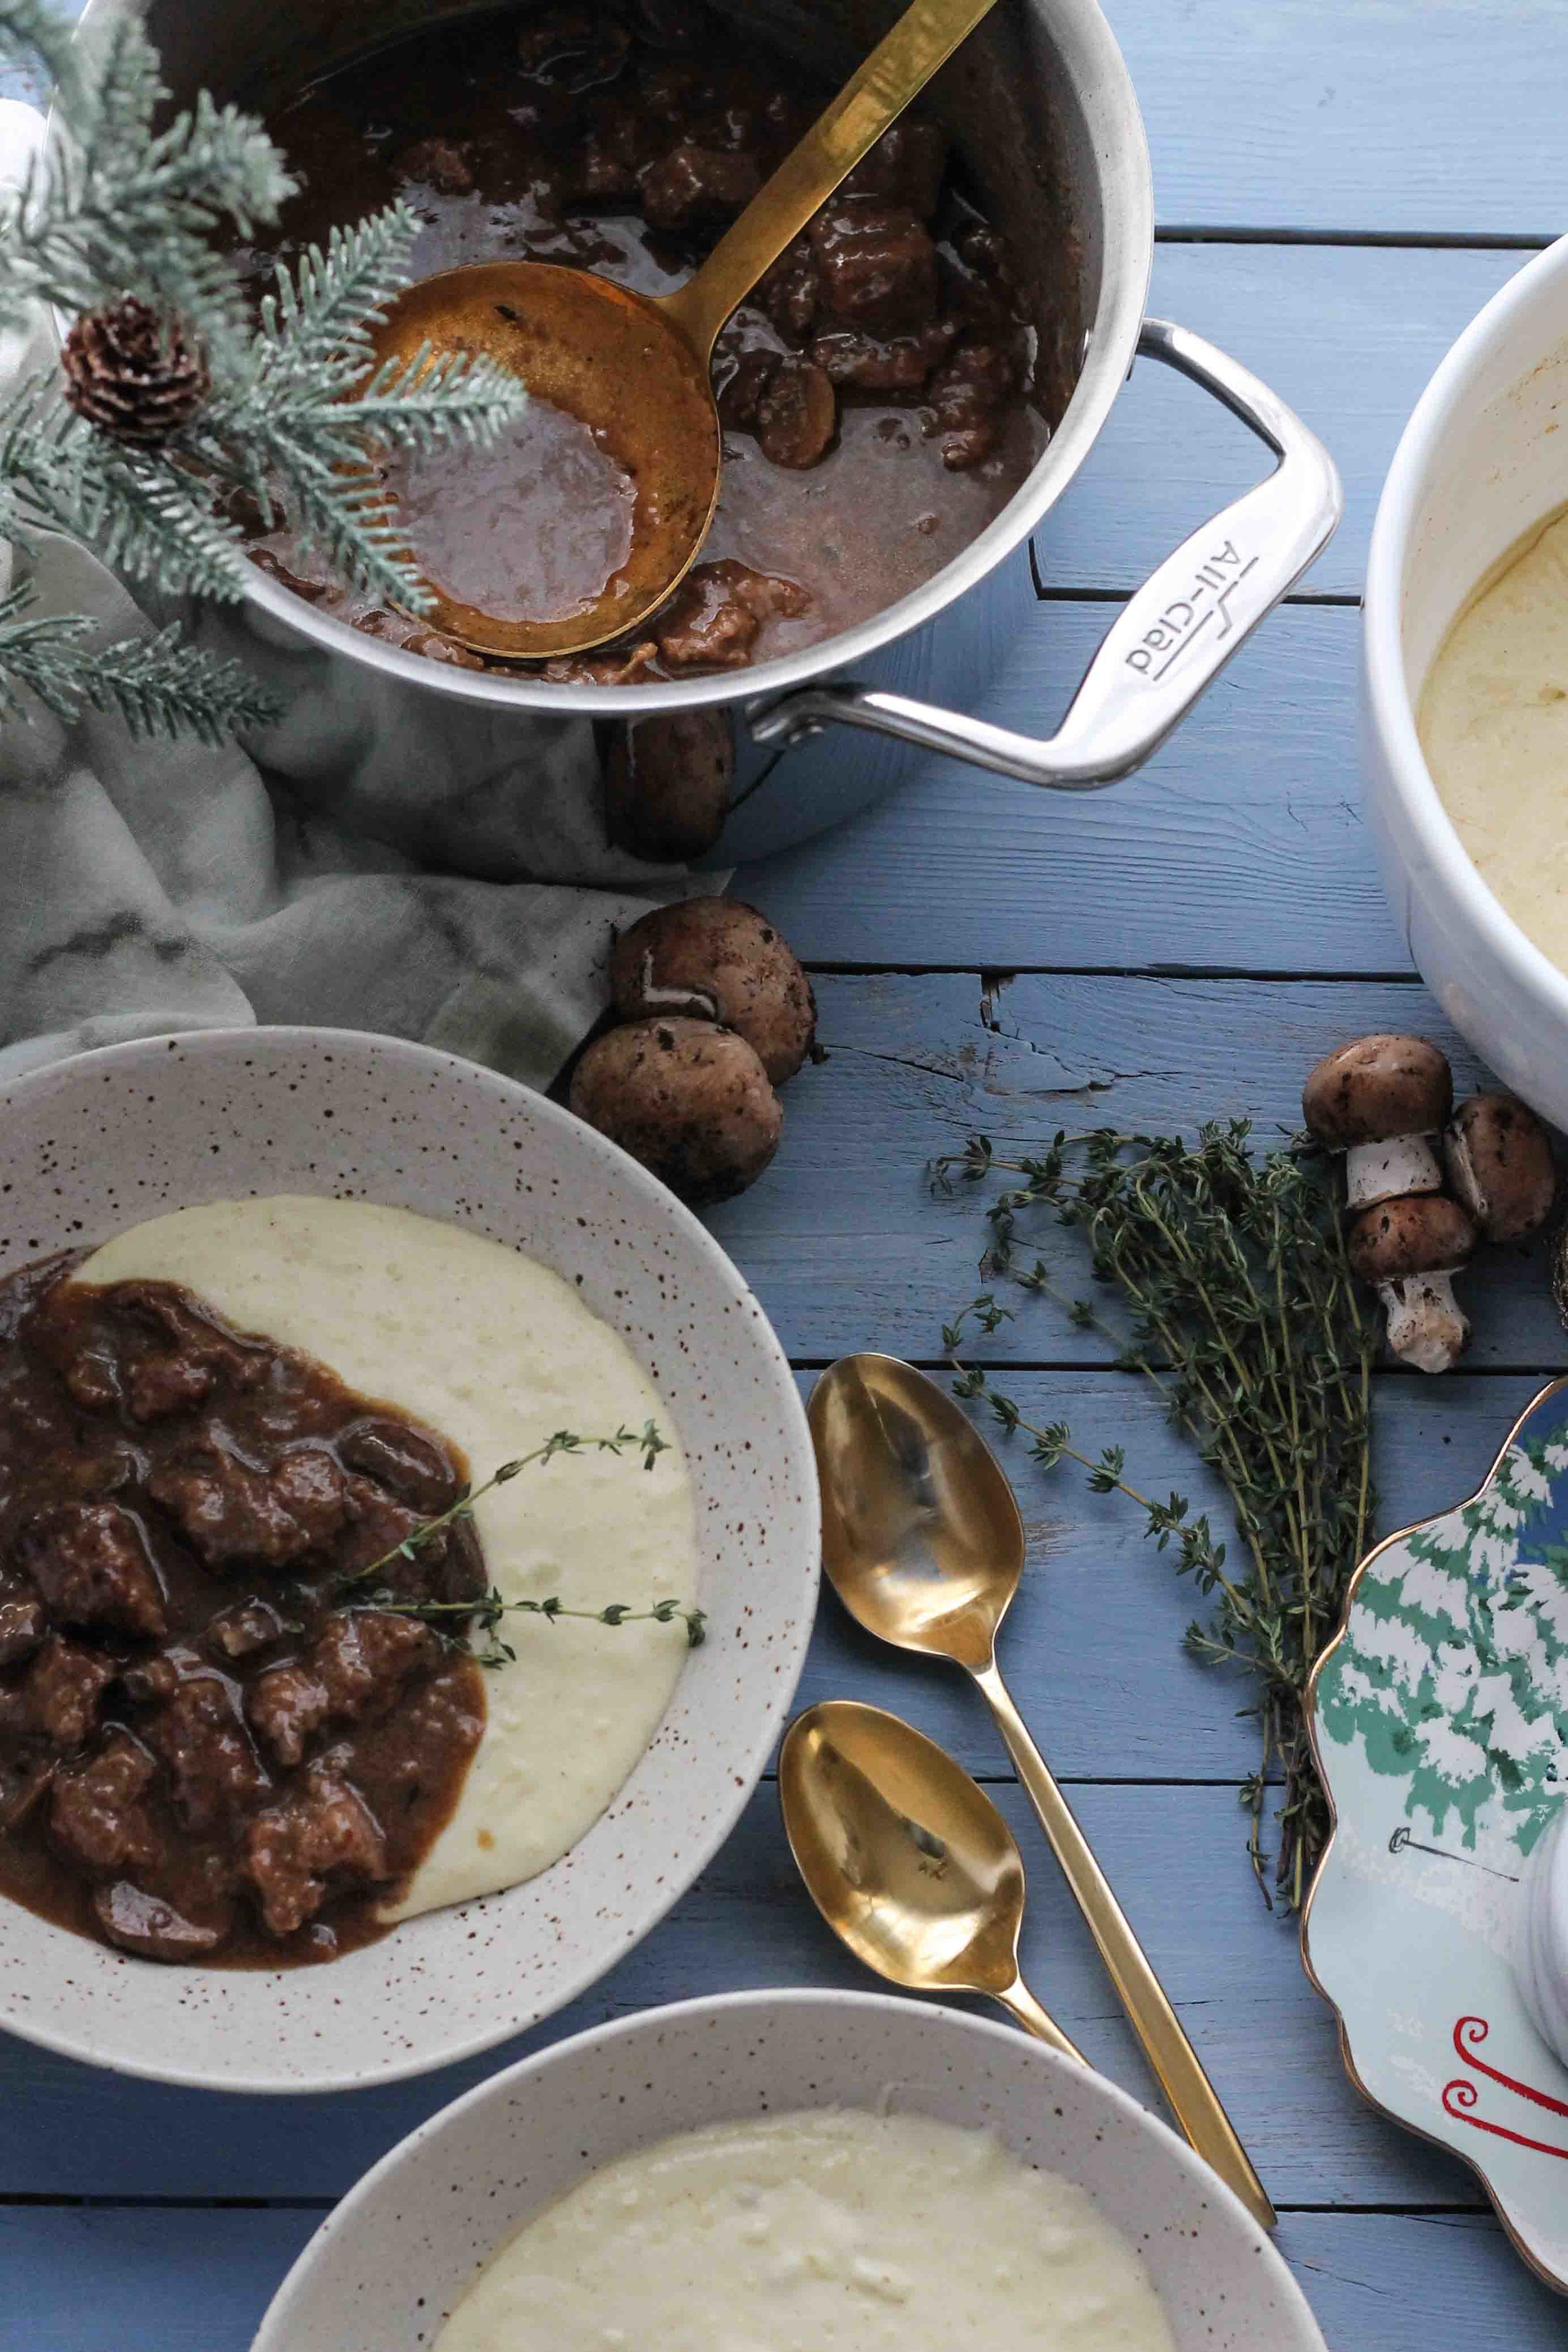 Classic beef and mushroom stew becomes the perfect cozy, winter meal when ladled over a spoonful of brown butter mashed potatoes.  [www.pedanticfoodie.com]